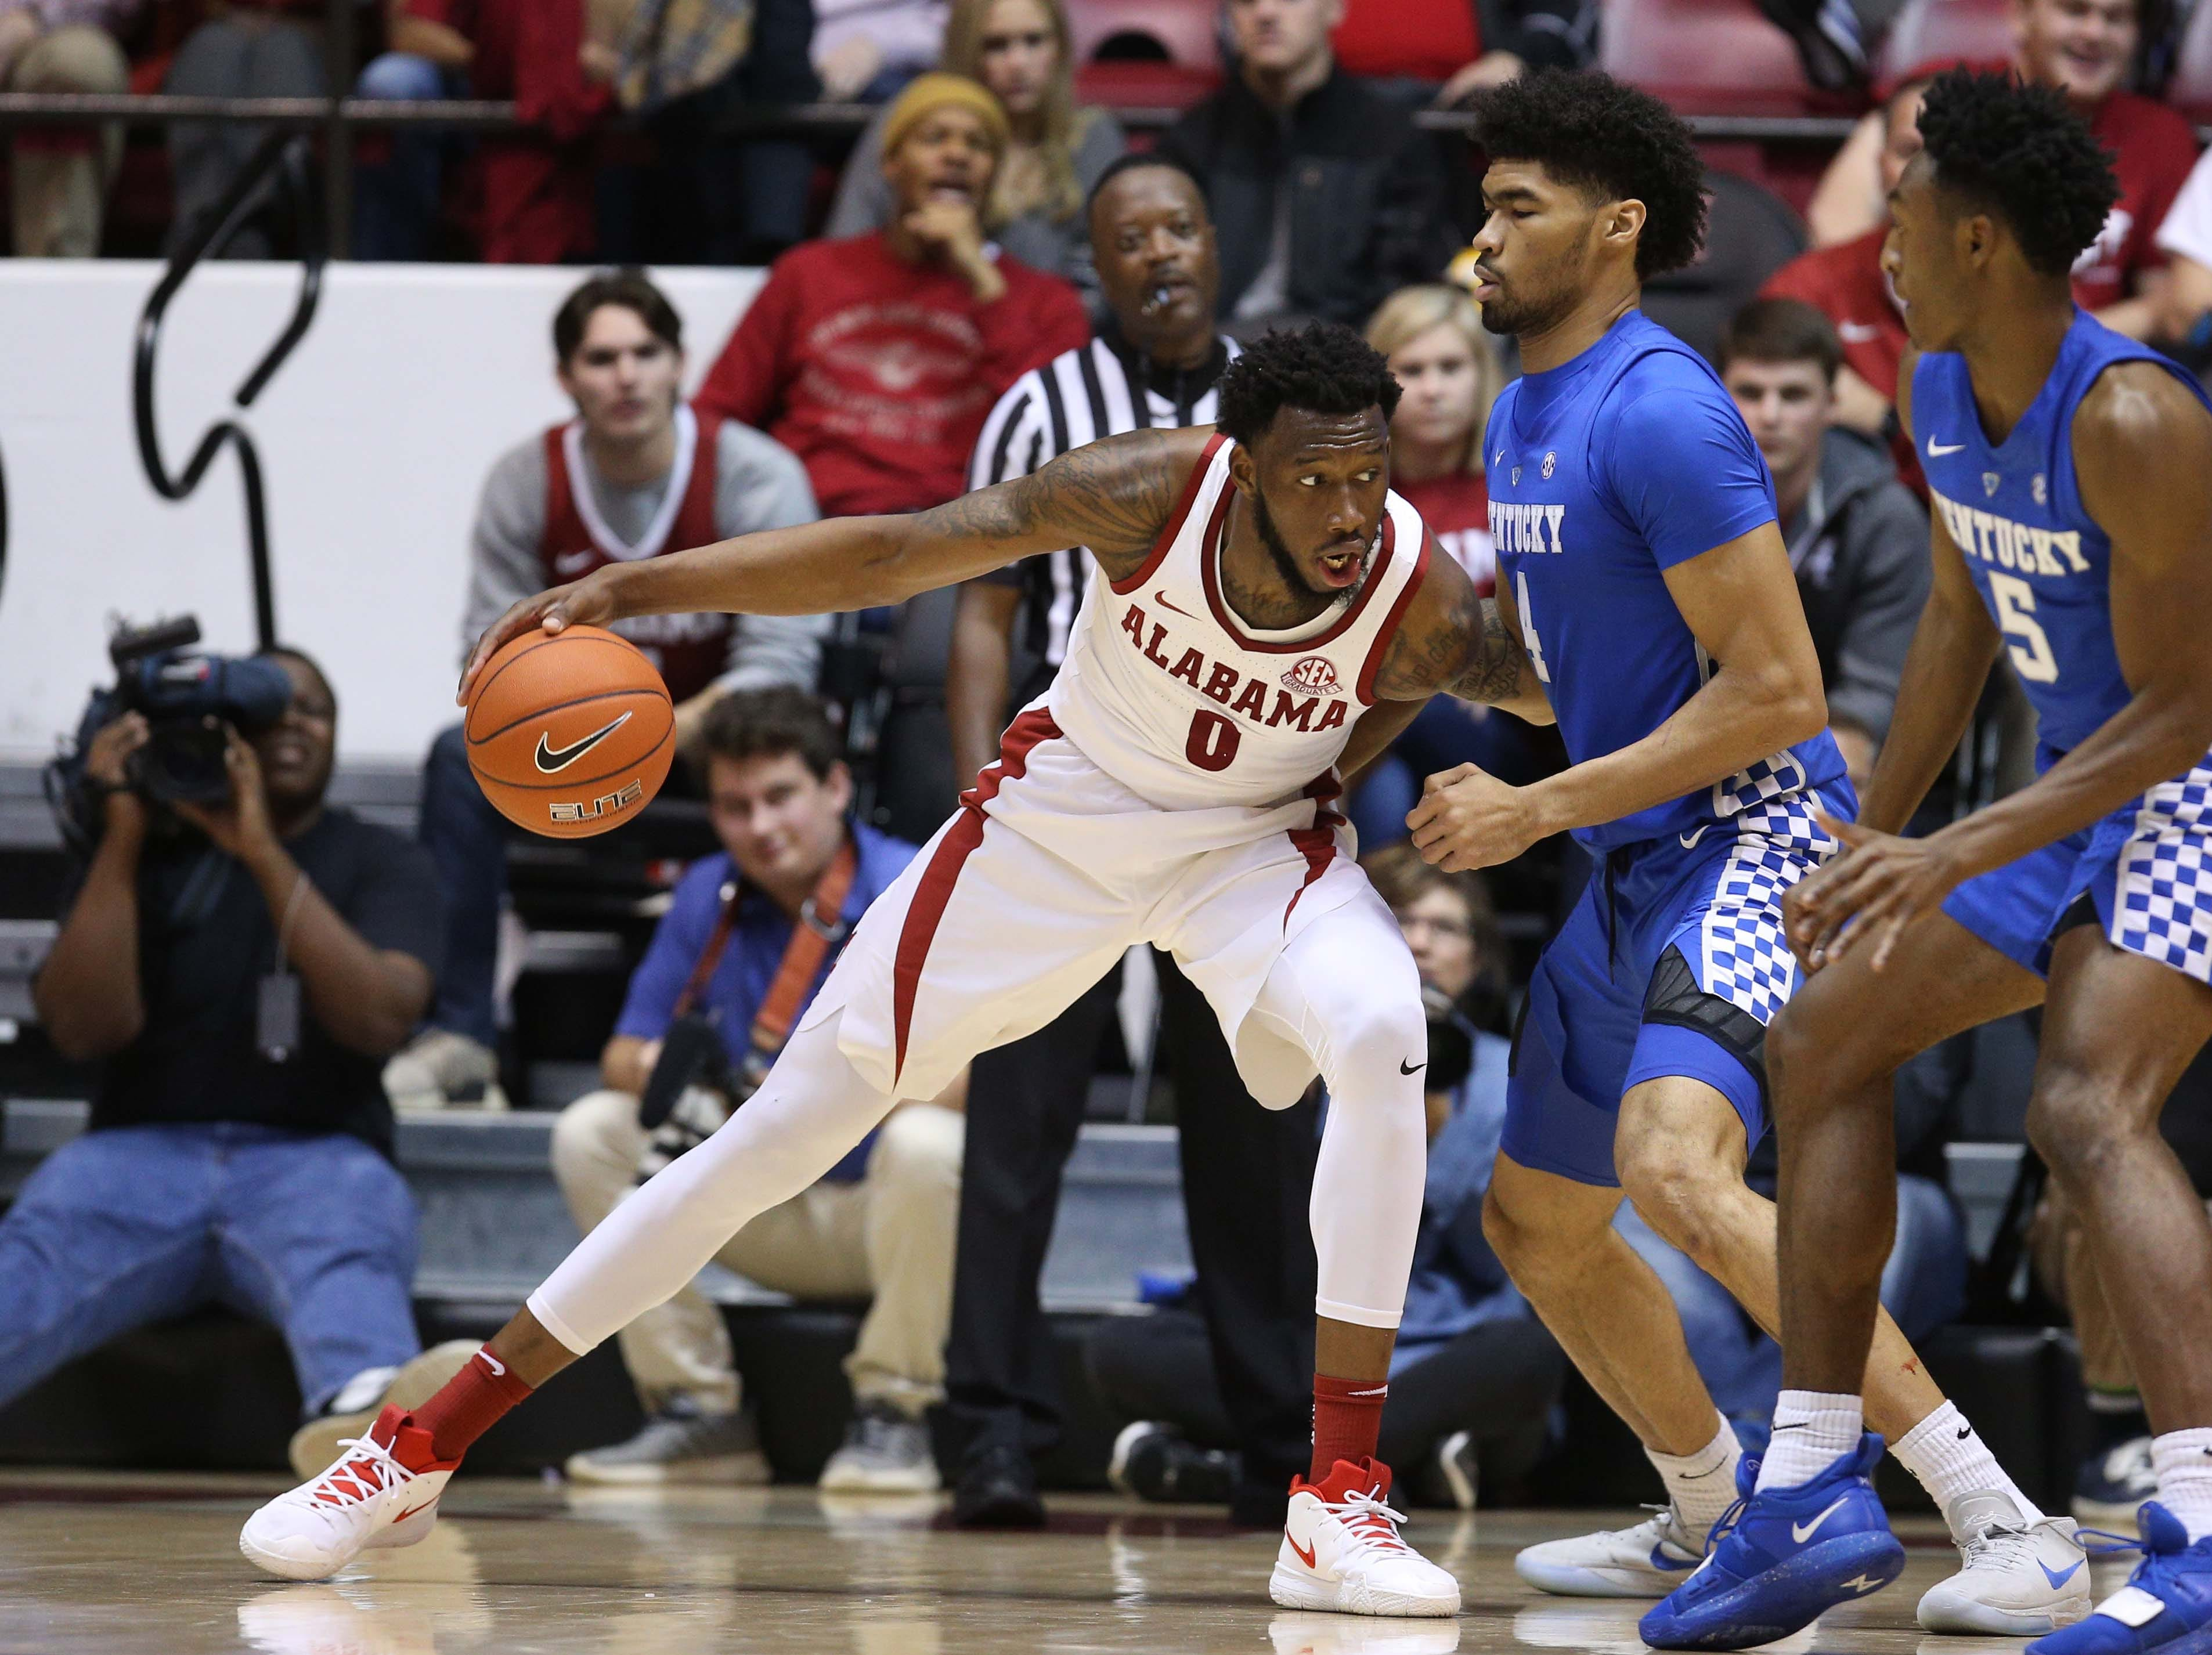 Jan 5, 2019; Tuscaloosa, AL, USA; Alabama Crimson Tide forward Donta Hall (0) pushes to the basket against Kentucky Wildcats forward Nick Richards (4) during the second half at Coleman Coliseum. Mandatory Credit: Marvin Gentry-USA TODAY Sports